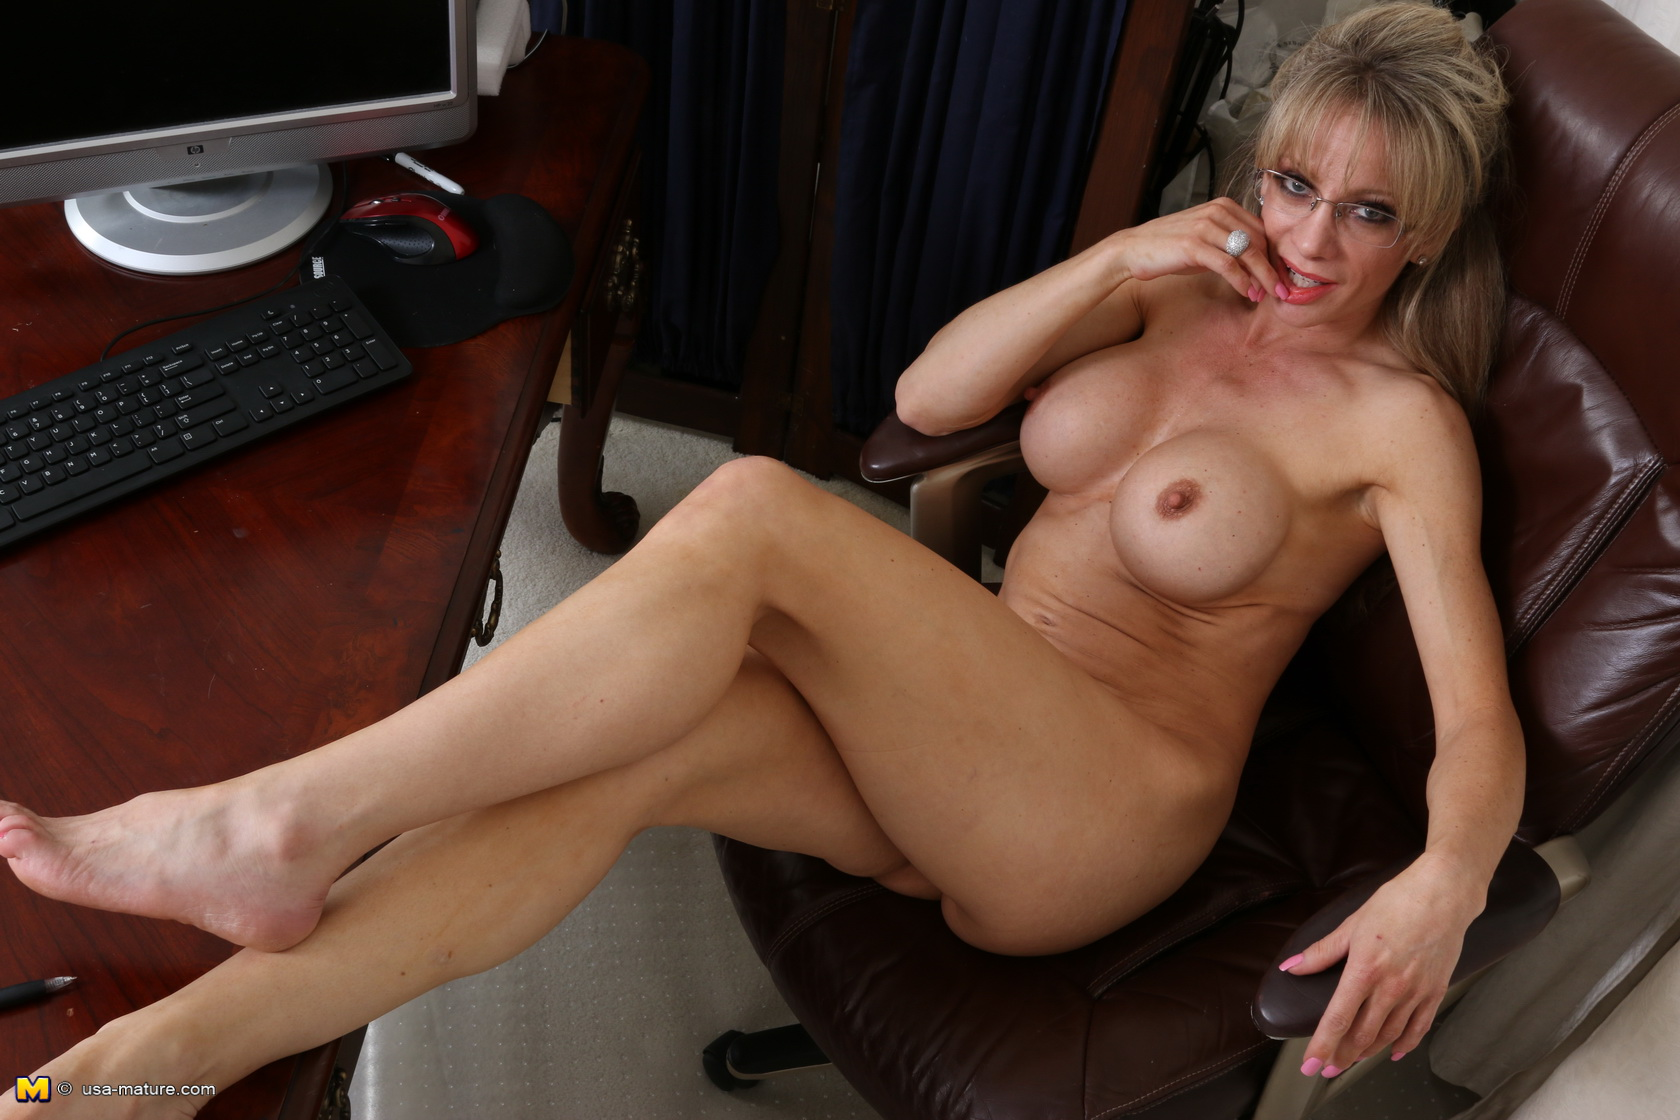 Apologise, but horney house wife porn pic